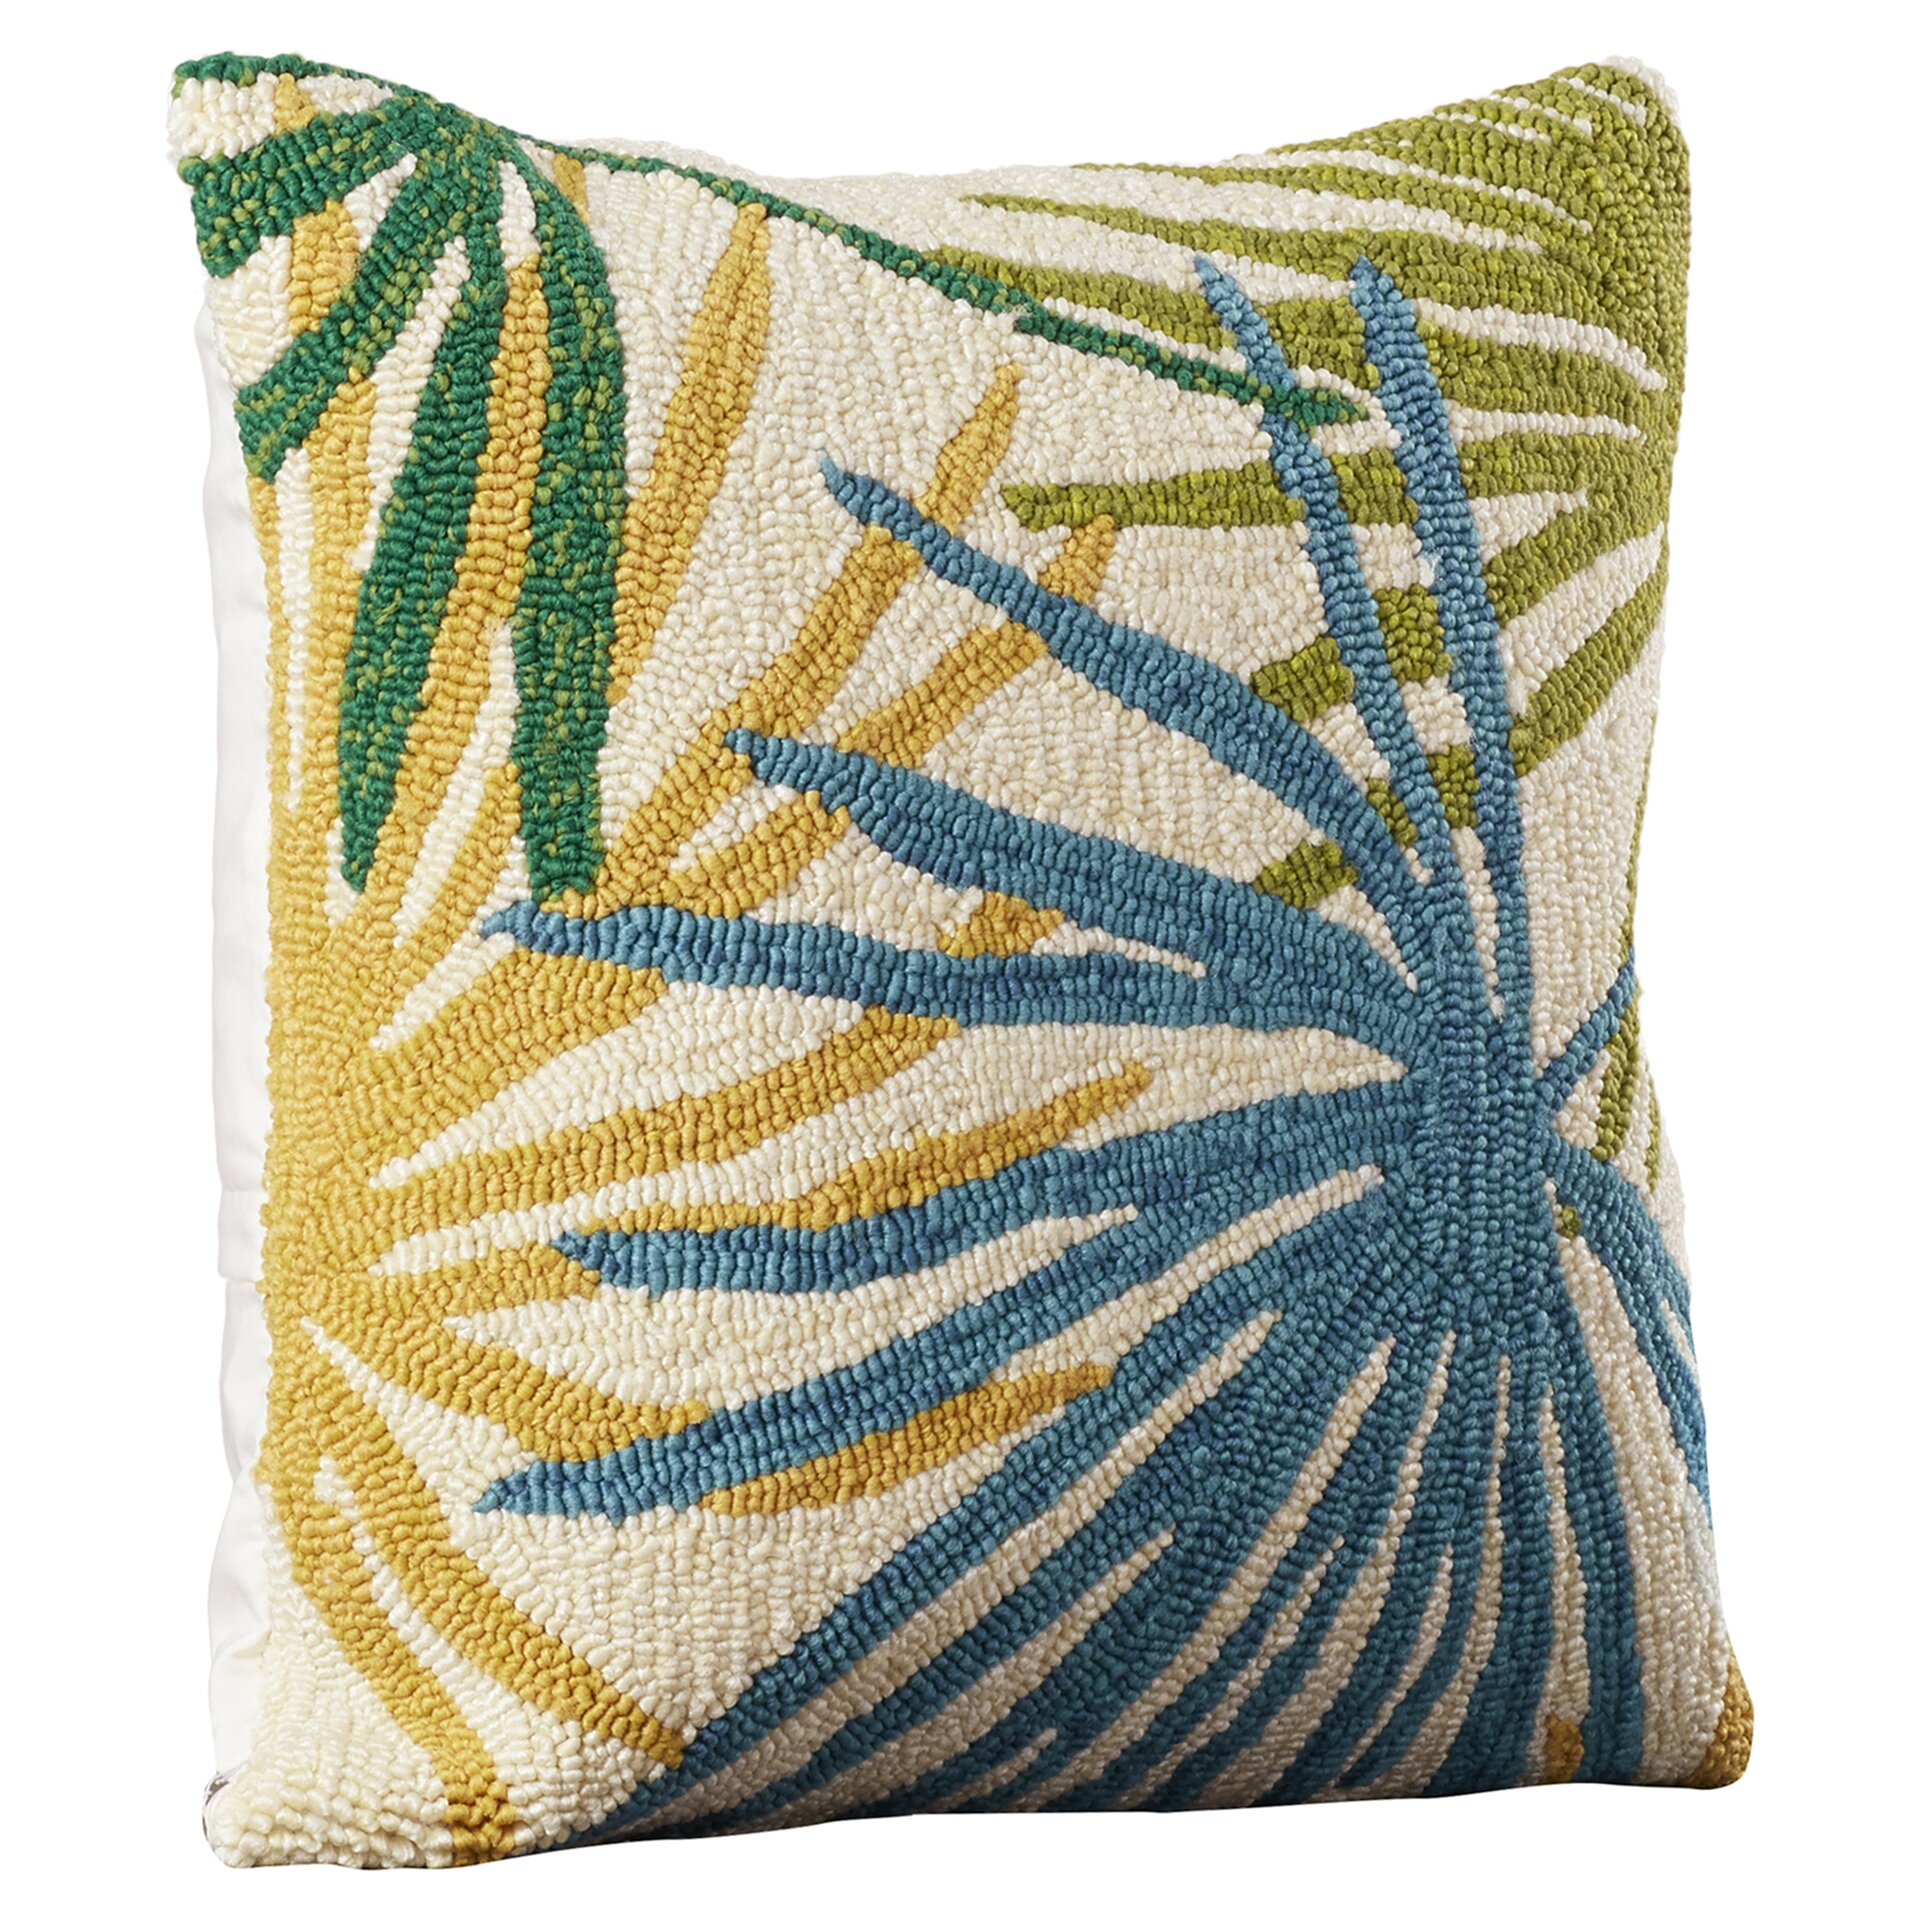 Throw Pillows The Bay : Bay Isle Home Bali Synthetic Throw Pillow & Reviews Wayfair